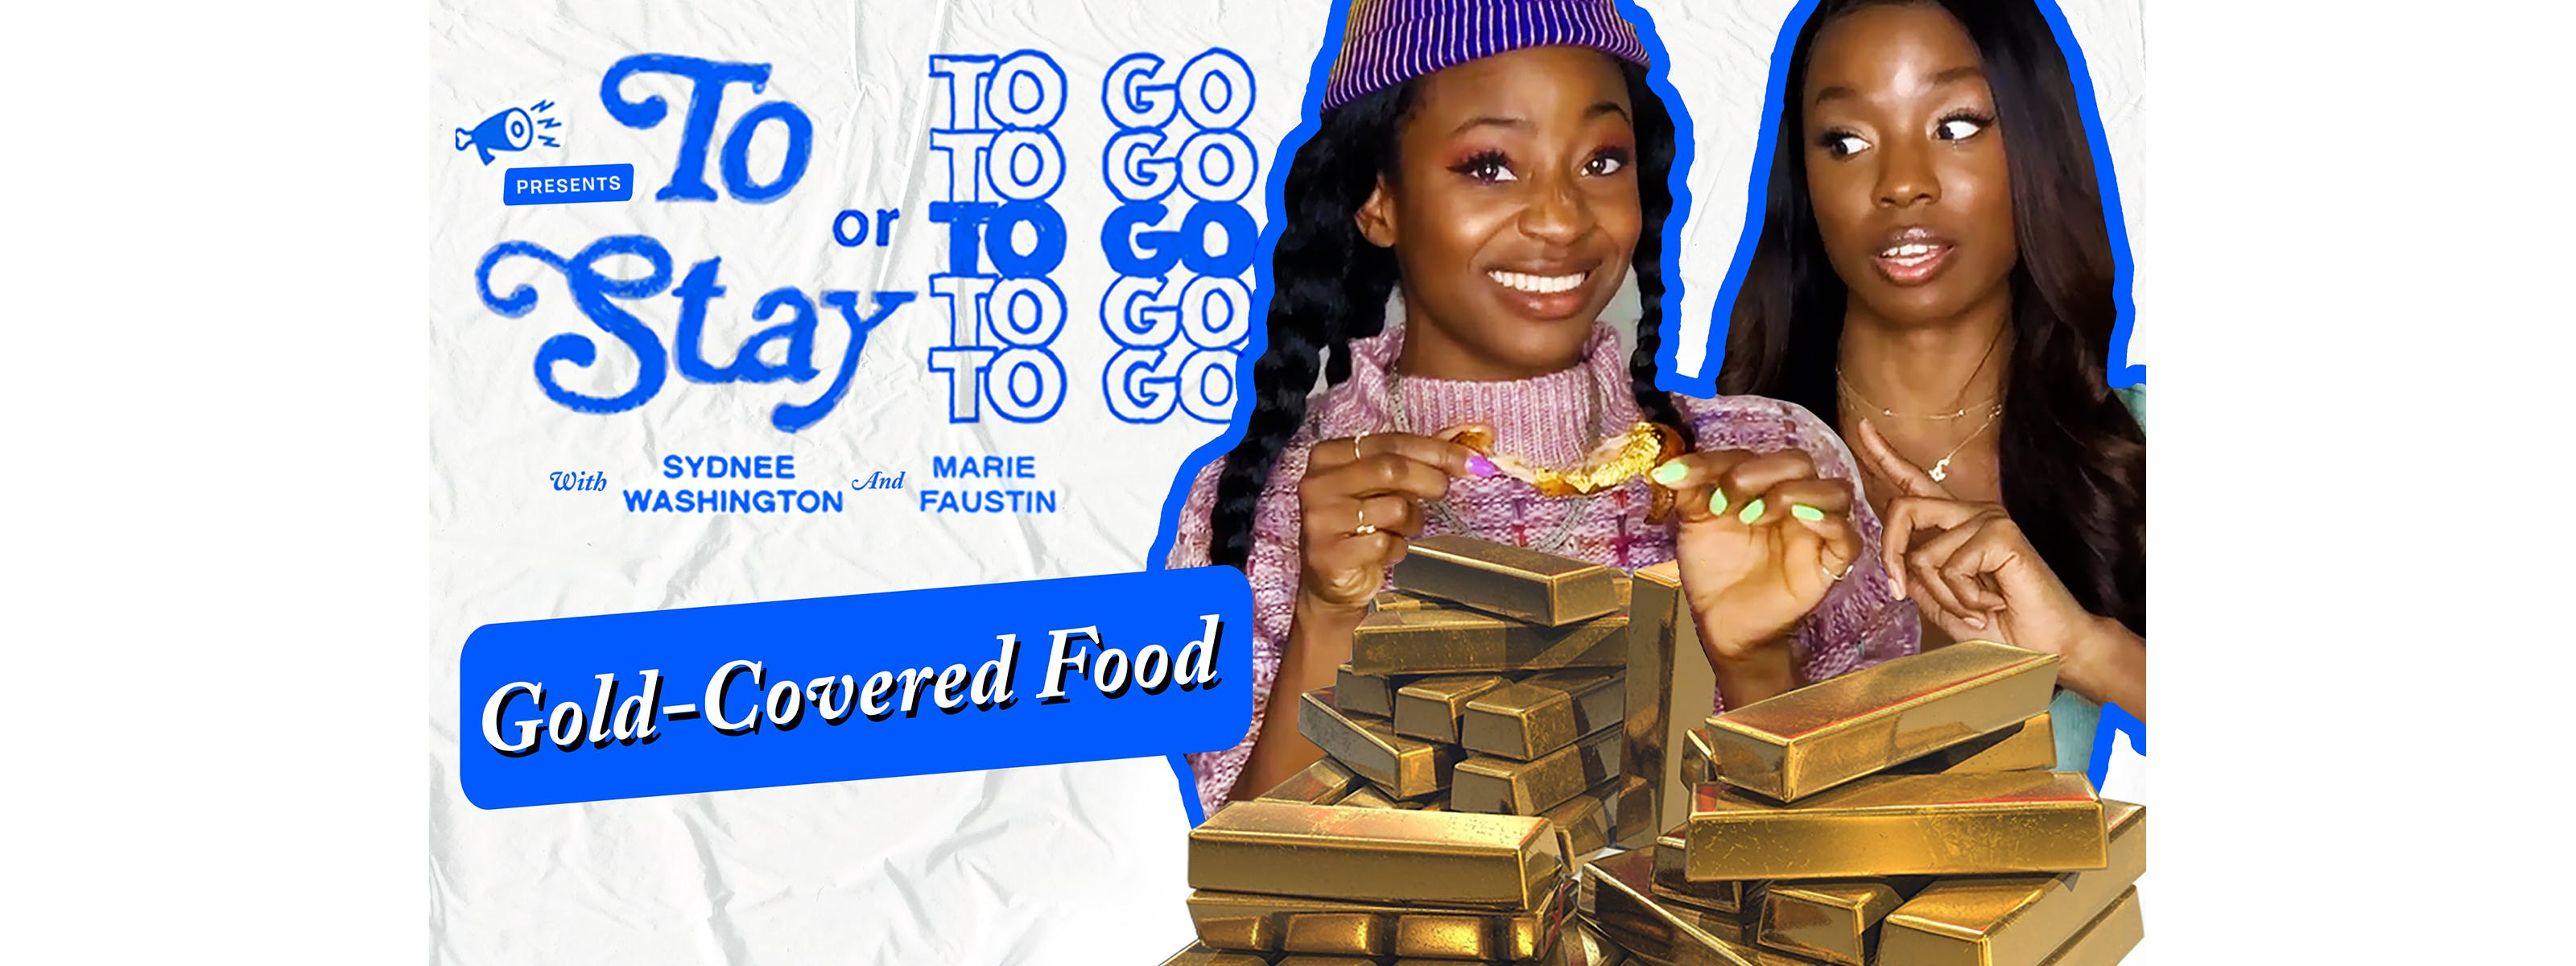 Is Gold Covered Food Worth The Hype? - Products - The Infatuation